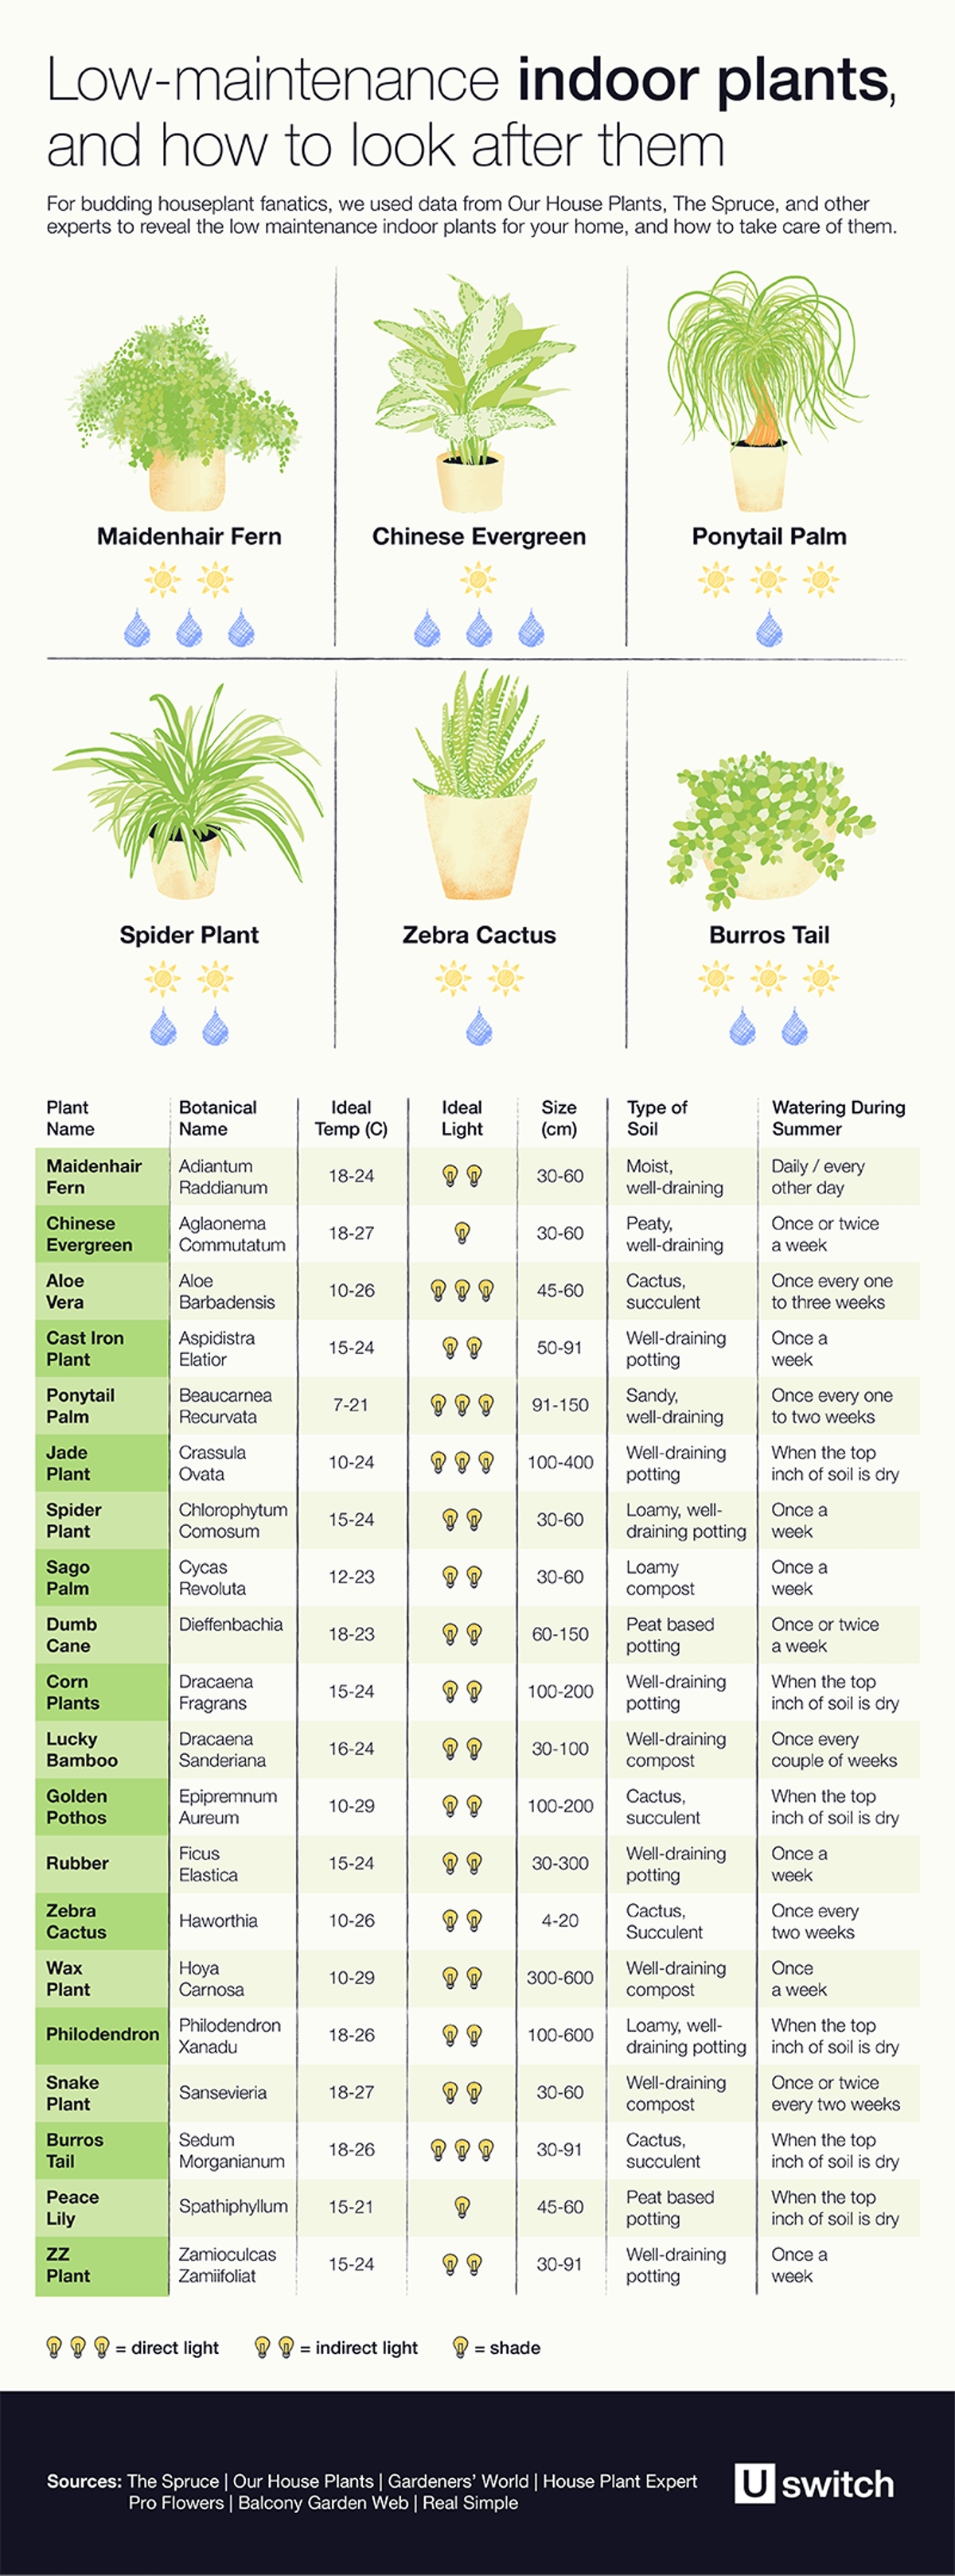 Table of low maintenance indoor plants and how to take care of them